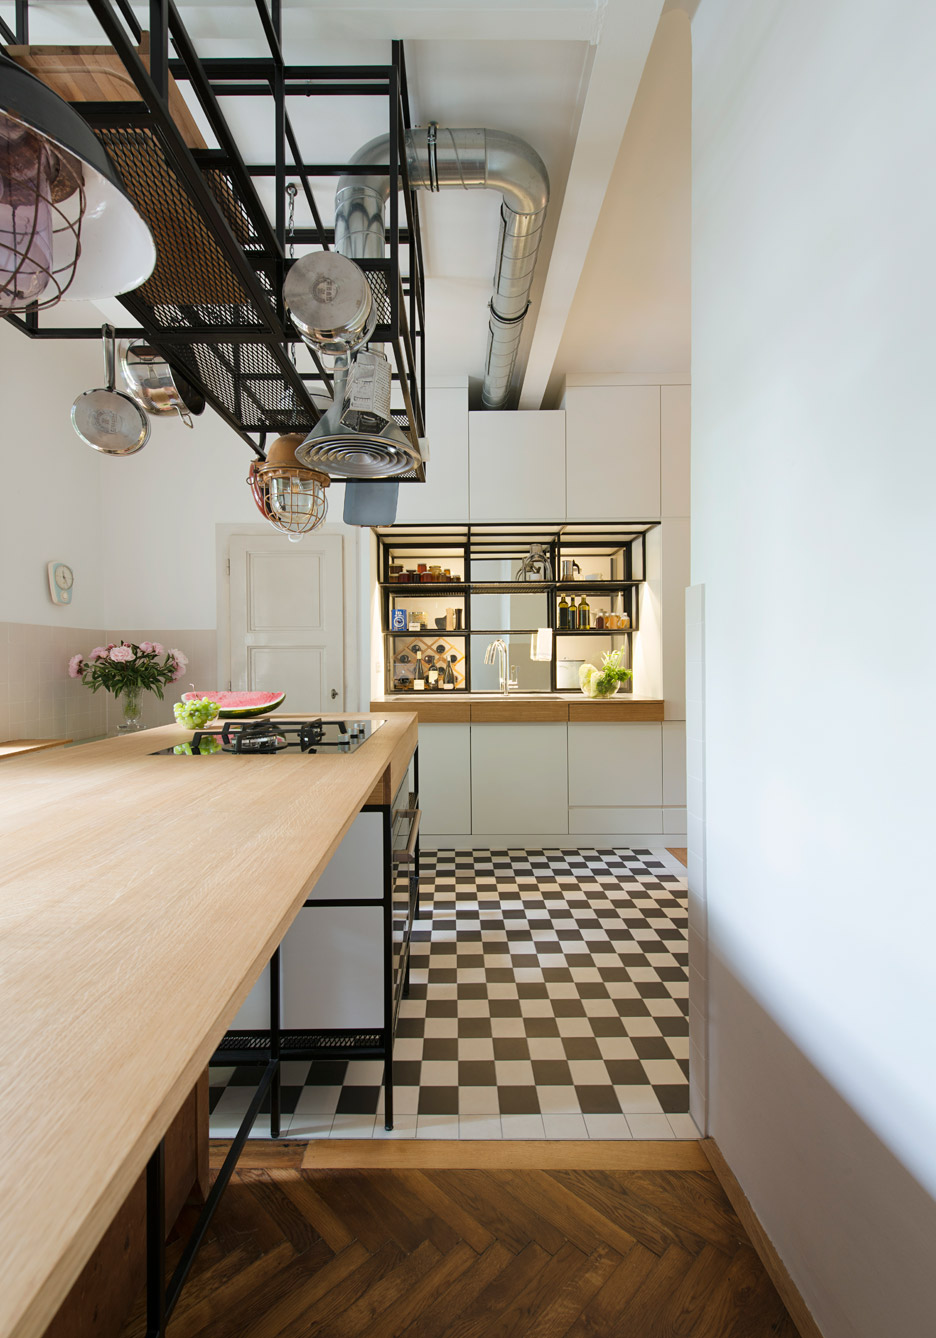 Keuken Art Deco Ifub Uncovers Parquet Flooring In 1930s Art Deco Apartment